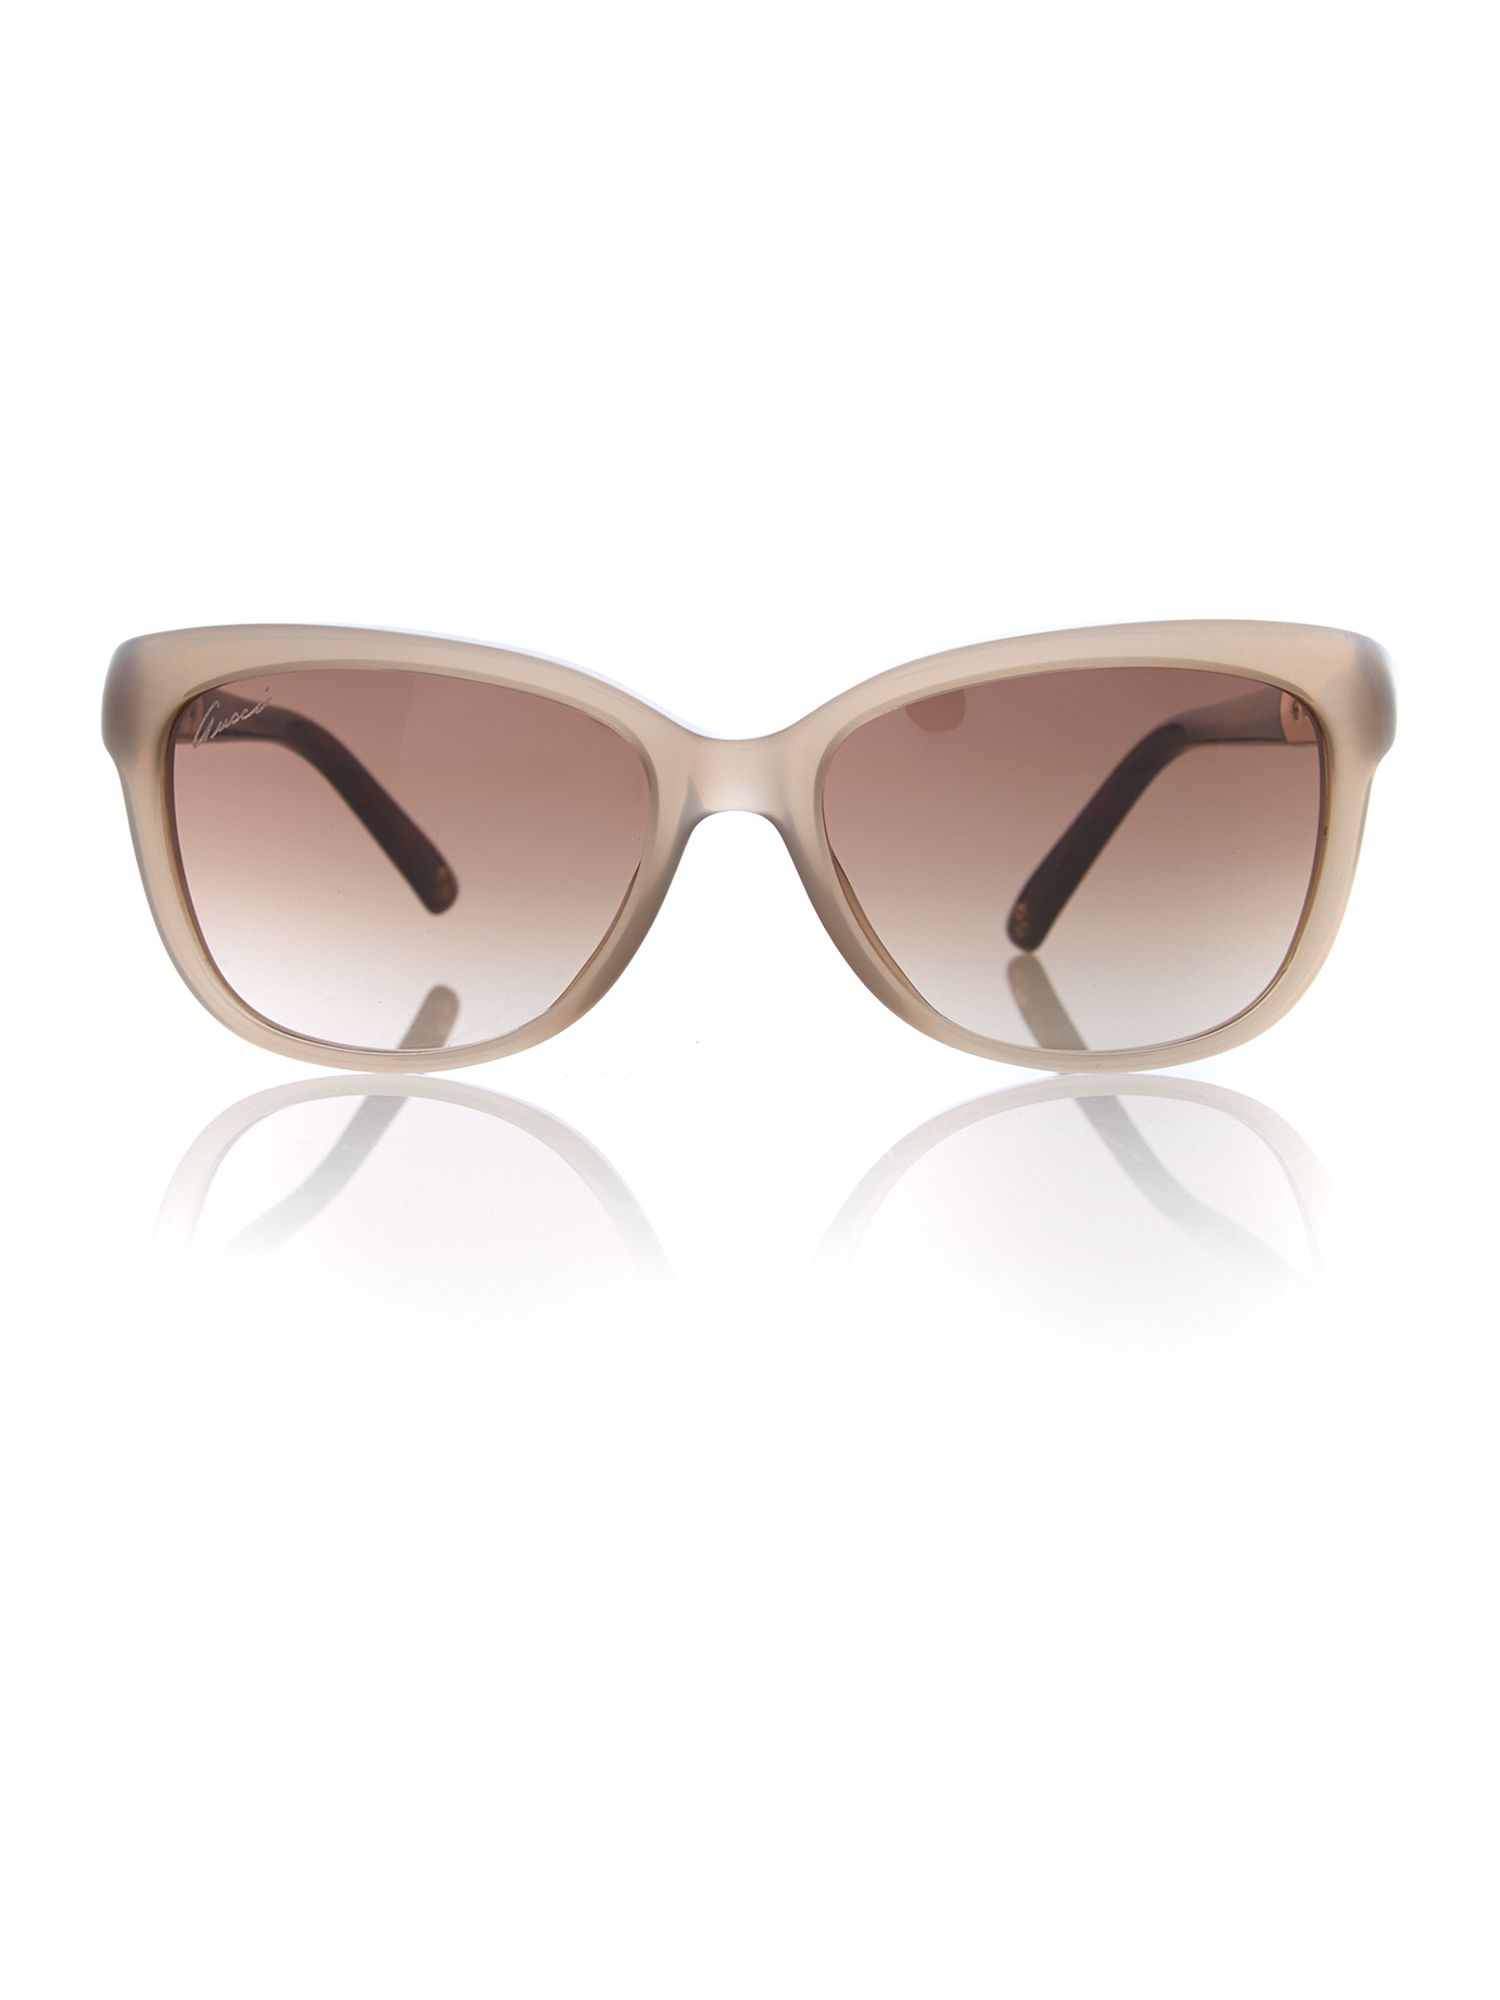 Women brown grad squared sunglasses